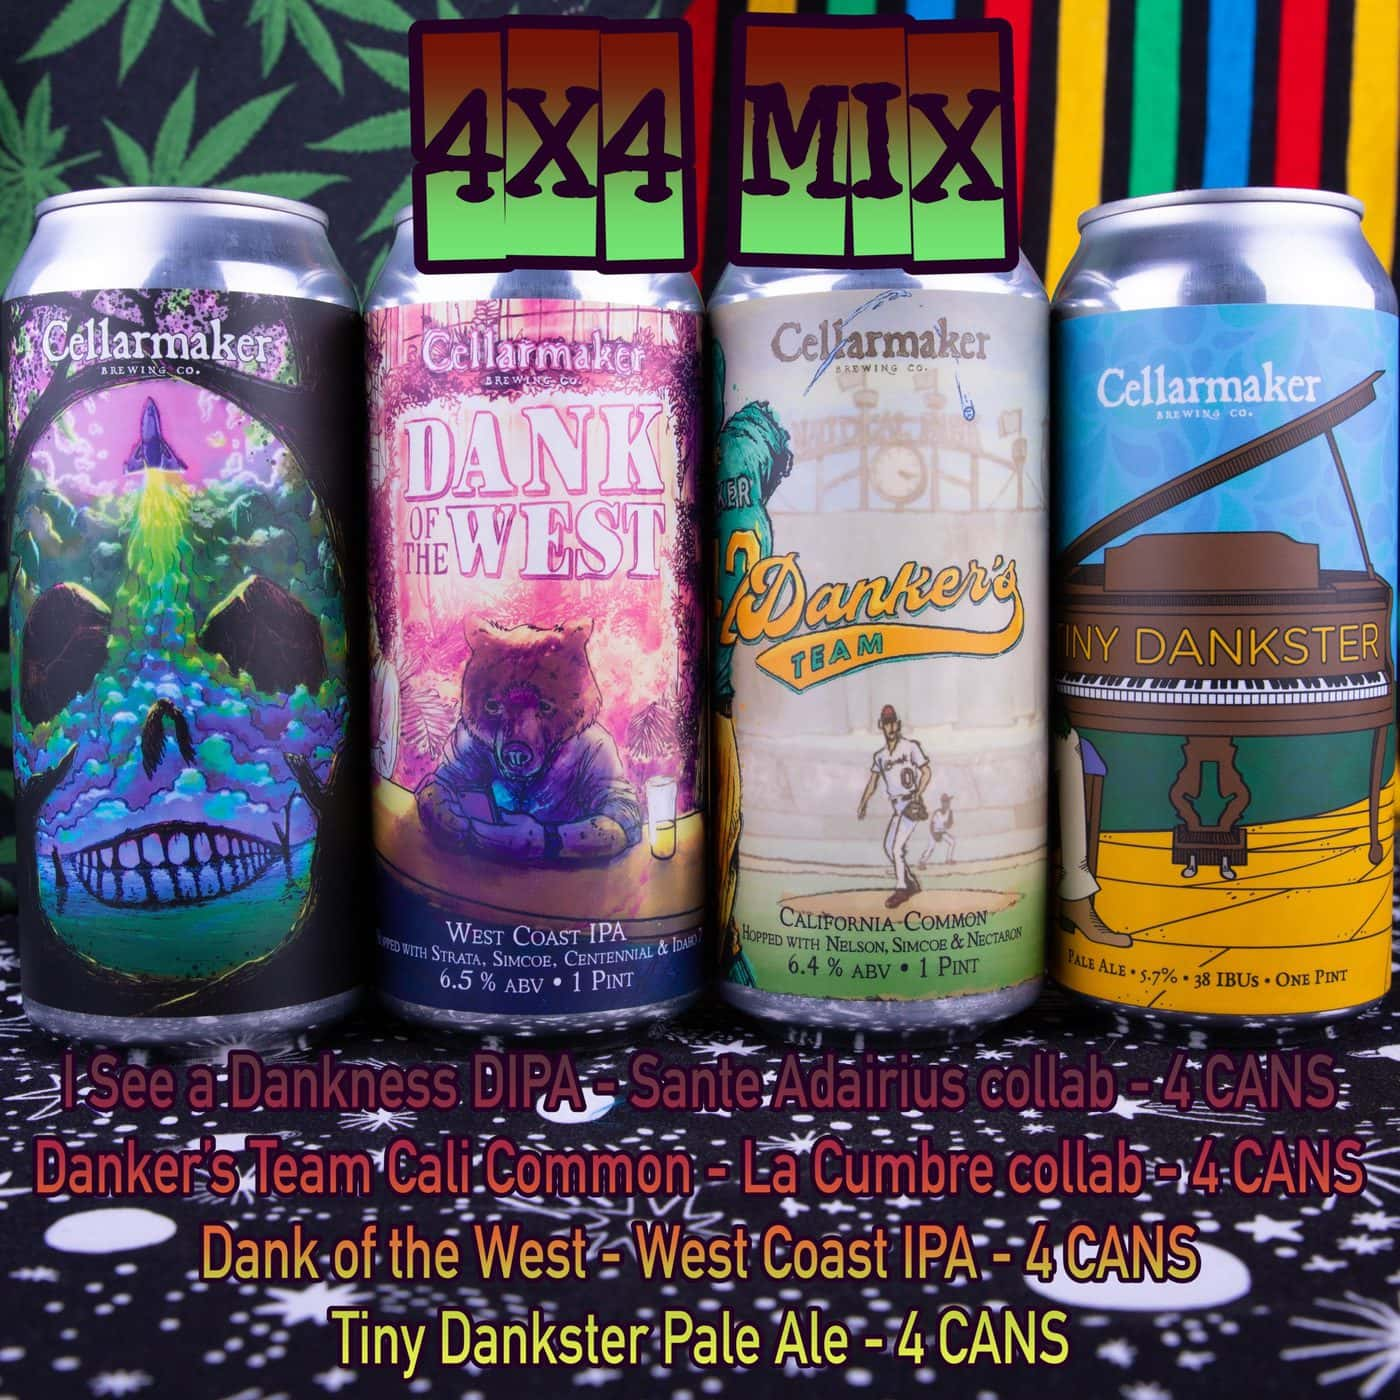 16 CANS 4X4 MIX – 4 I See A Dankness DIPA – Sante Adairius Collab,  4 Danker's Team Cali Common – La Cumbre Collab, 4 Dank Of The West  IPA, 4 Tiny Dankster Pale Ale – Shipping Out Tuesday 4/13 For Next Day Delivery*